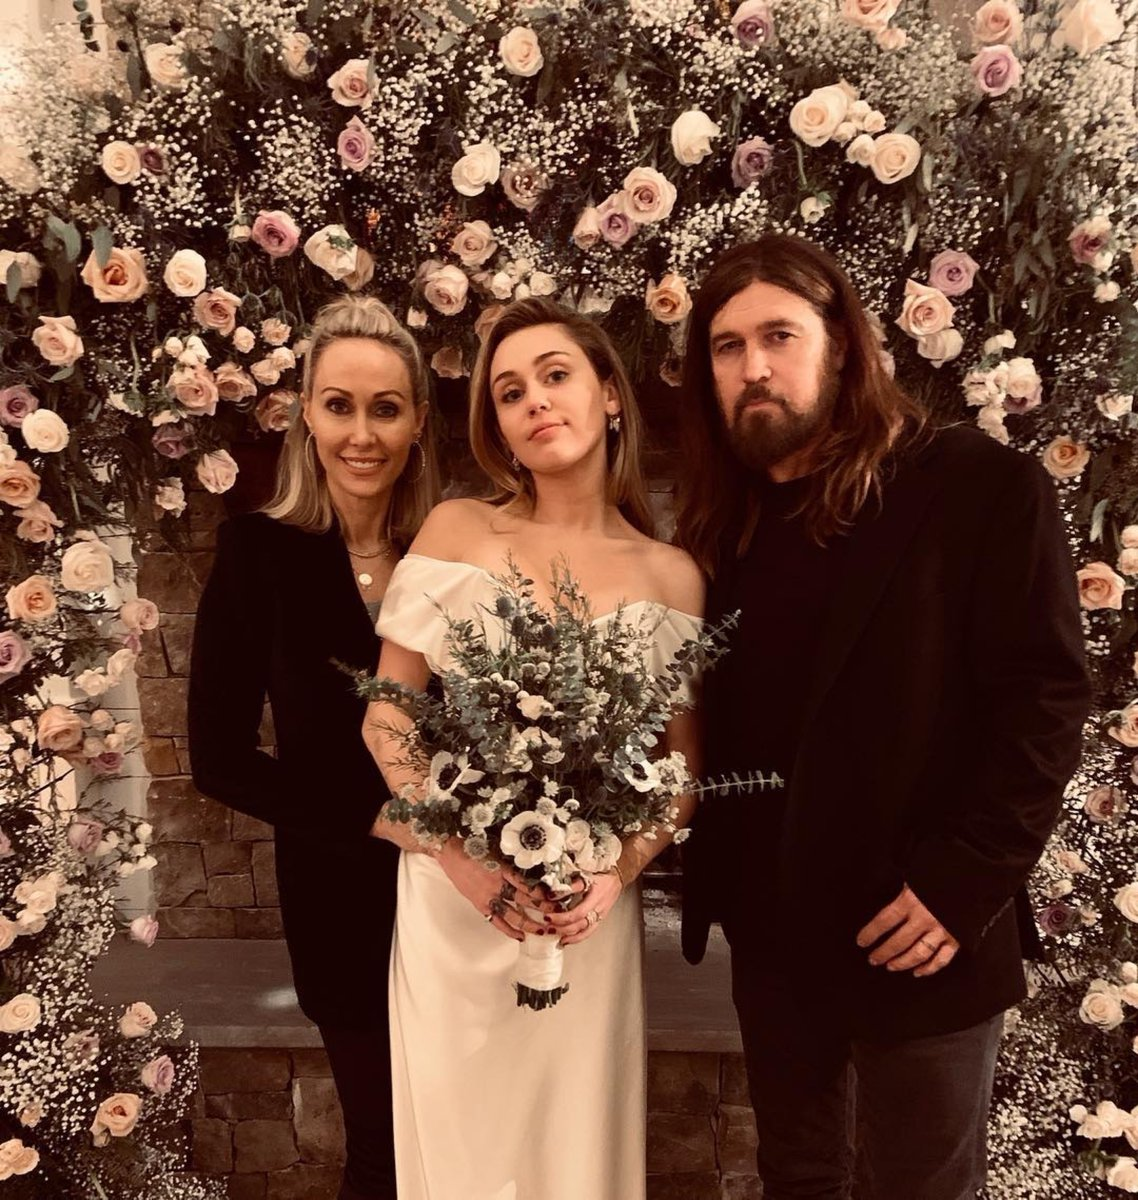 Miley Cyrus and Liam Hemsworth wedding photos